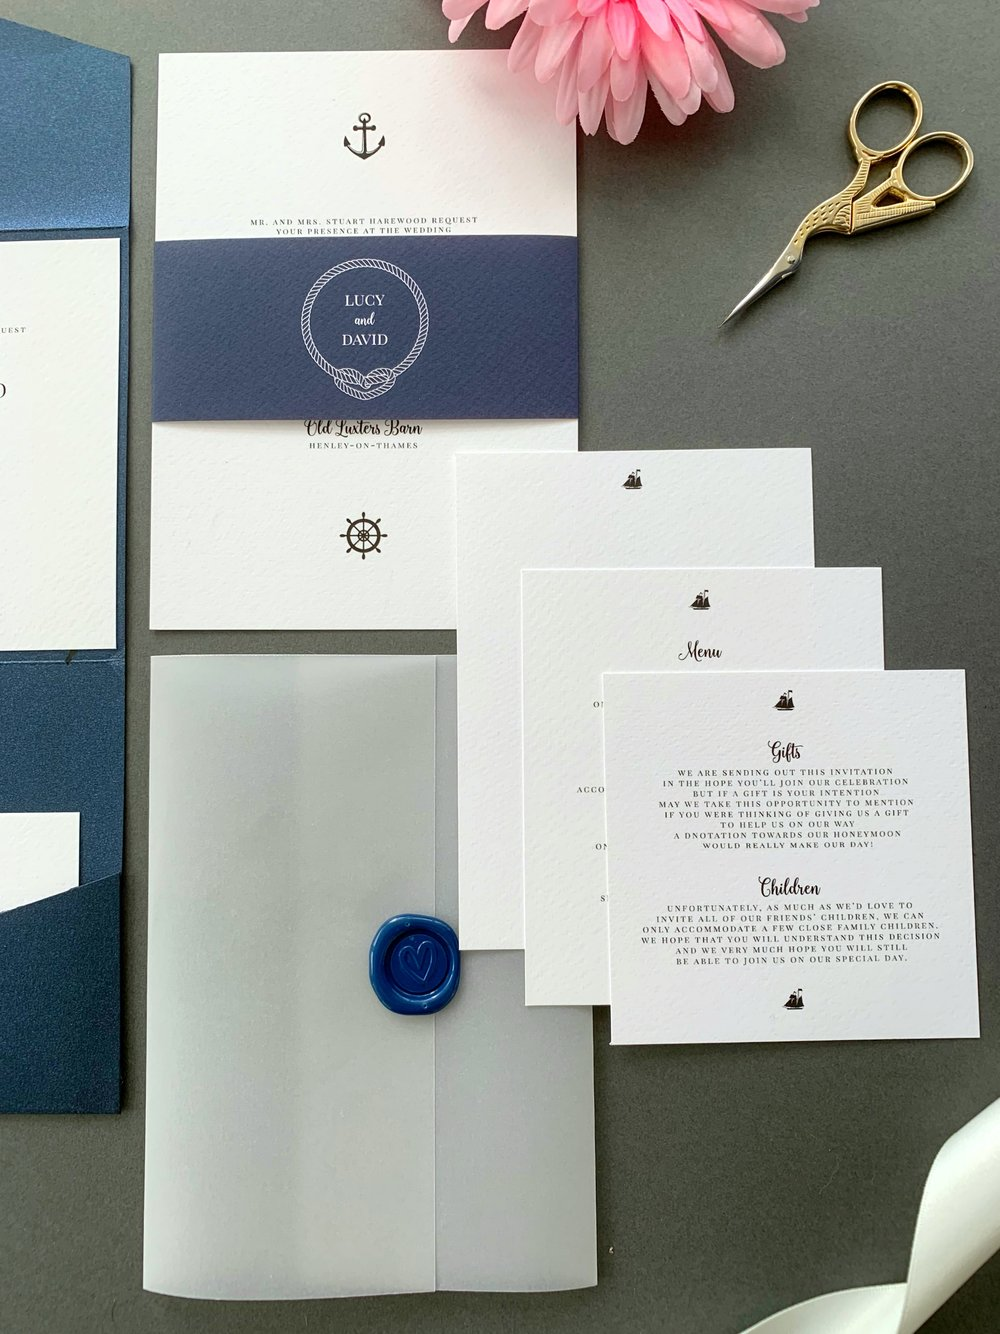 Canary Wharf Invitation Suite in Jet Black and Navy Blue for printing, with Navy Blue Wax Seal on Vellum Jacket